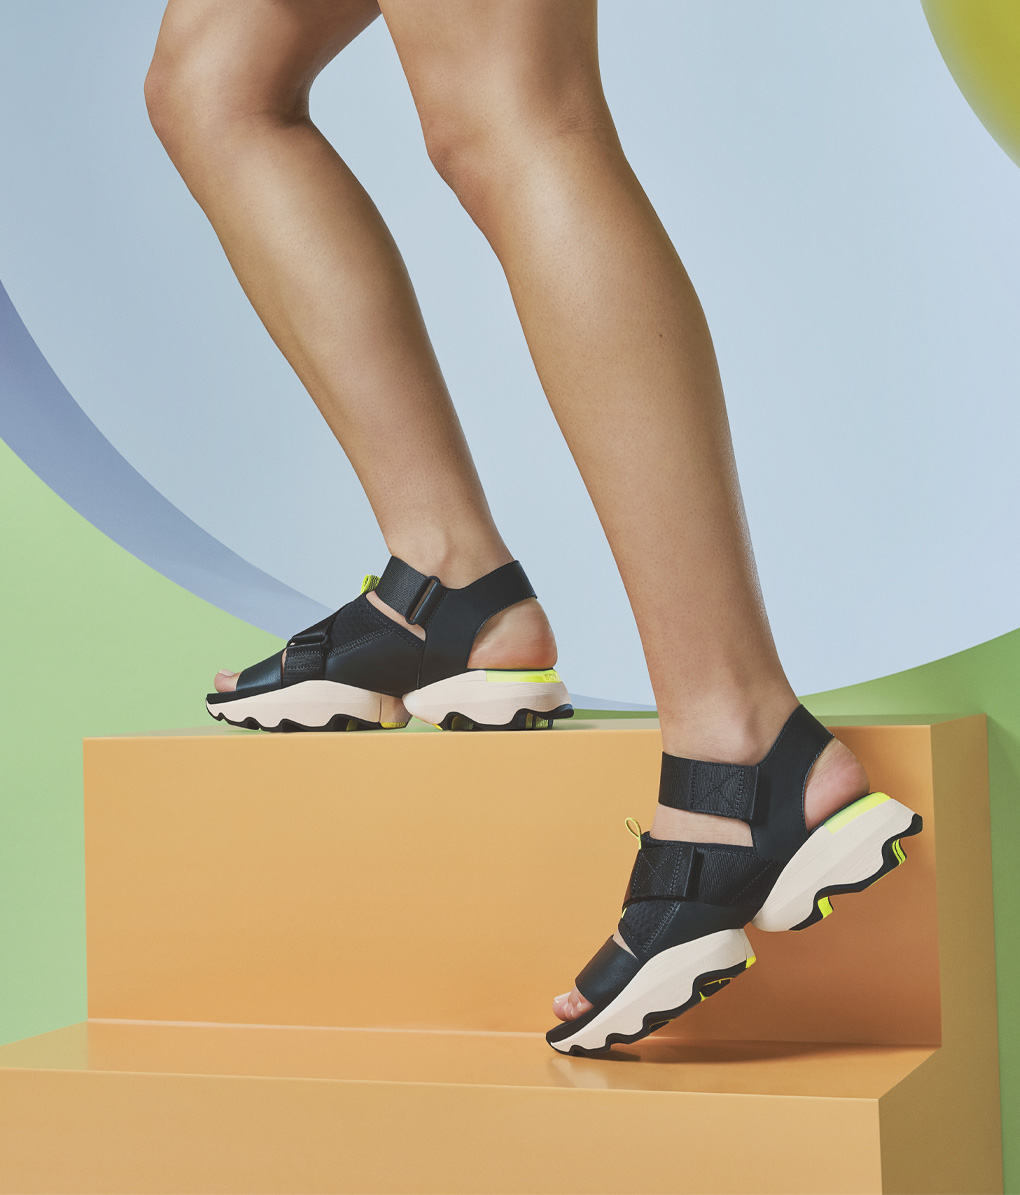 Thigh down image of a woman wearing new Kinetic Sandals